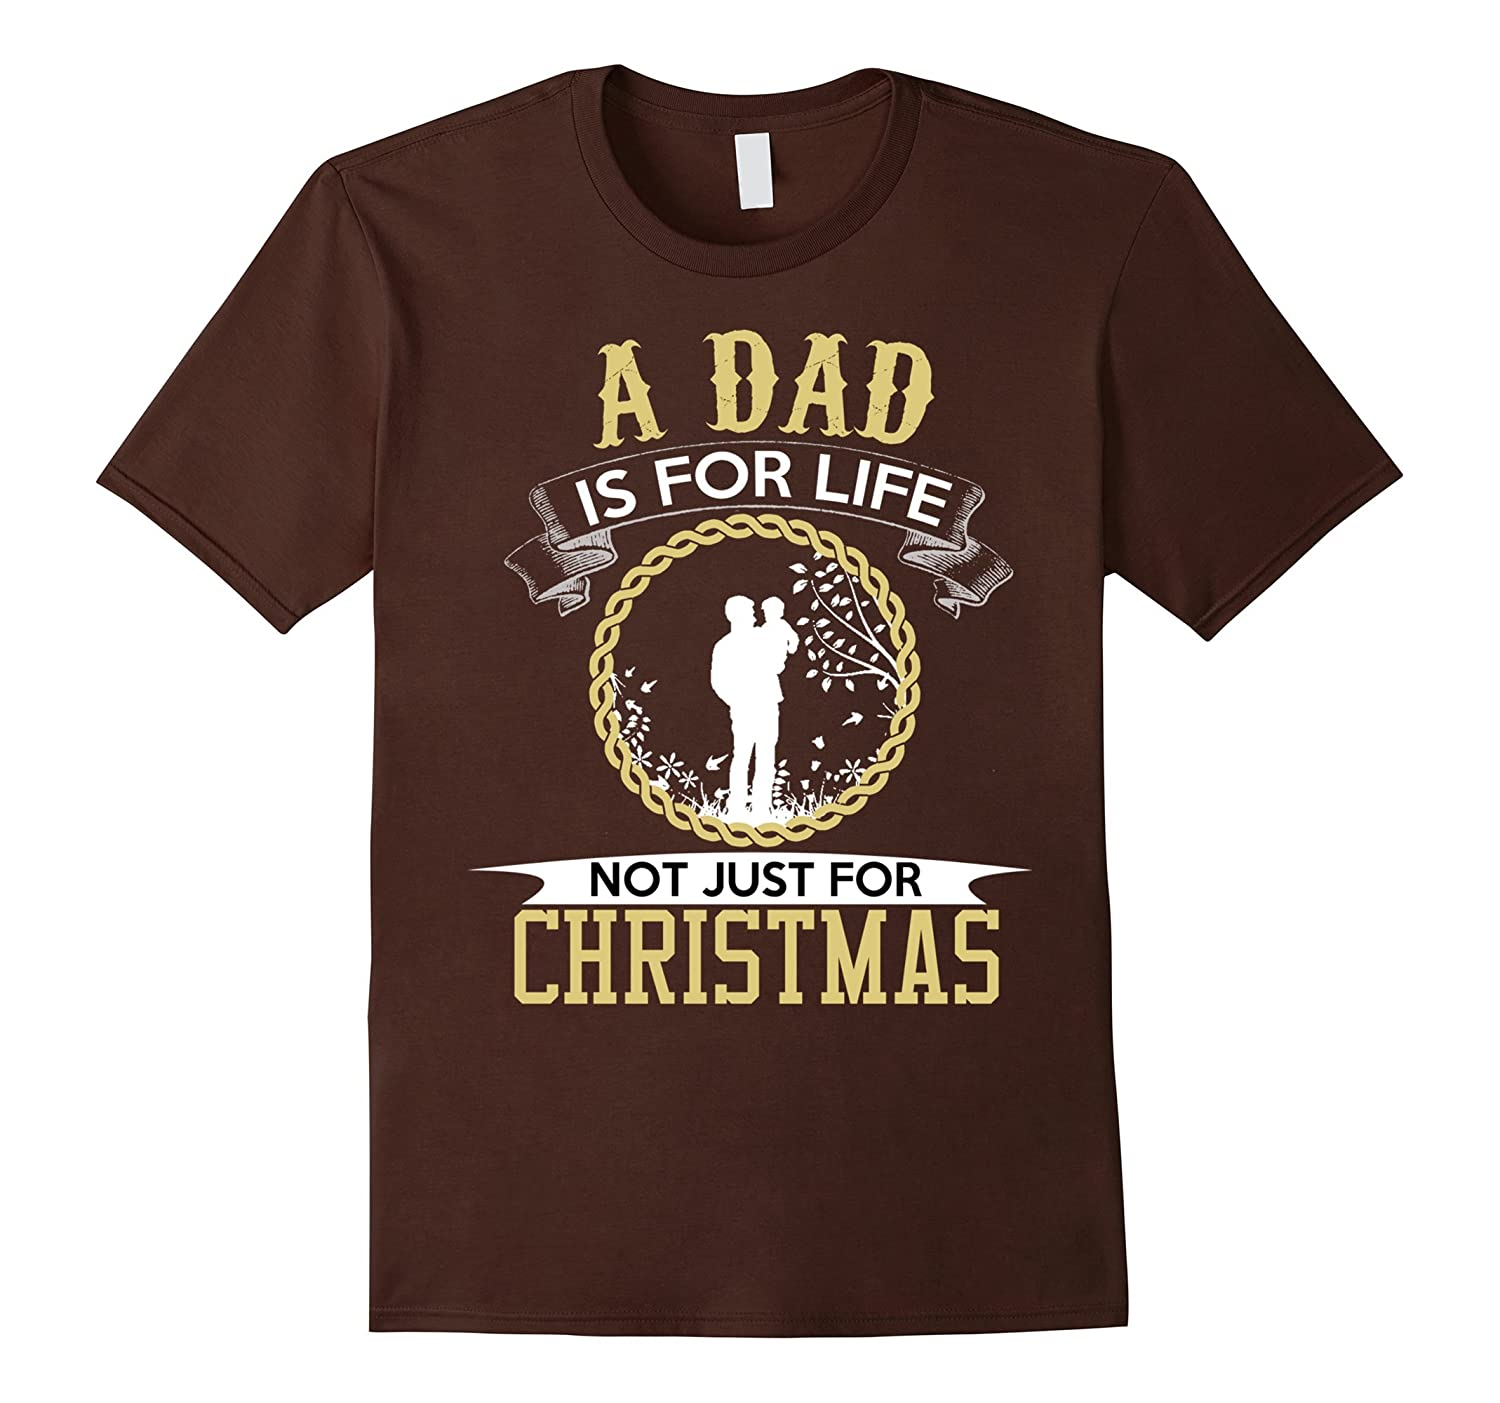 A Dad is for Life not just for Christmas -Gift-shirt for Dad-Art